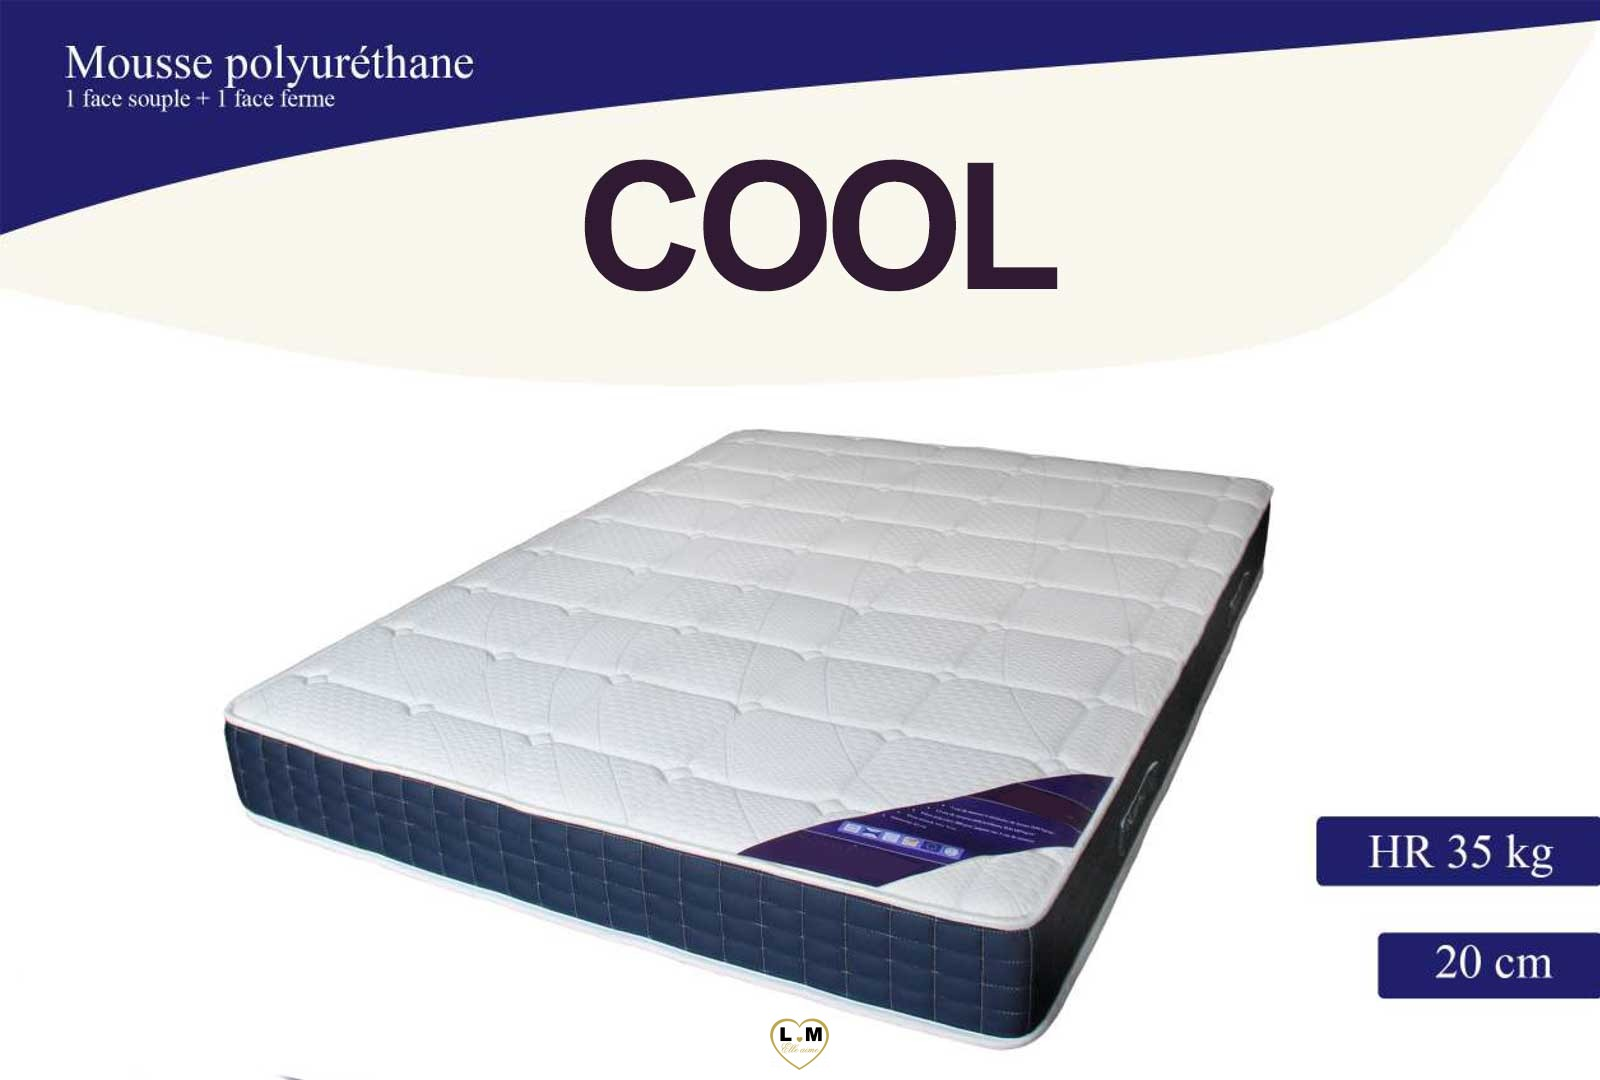 cool matelas mousse le matelas 140x190 cm lignemeuble com. Black Bedroom Furniture Sets. Home Design Ideas